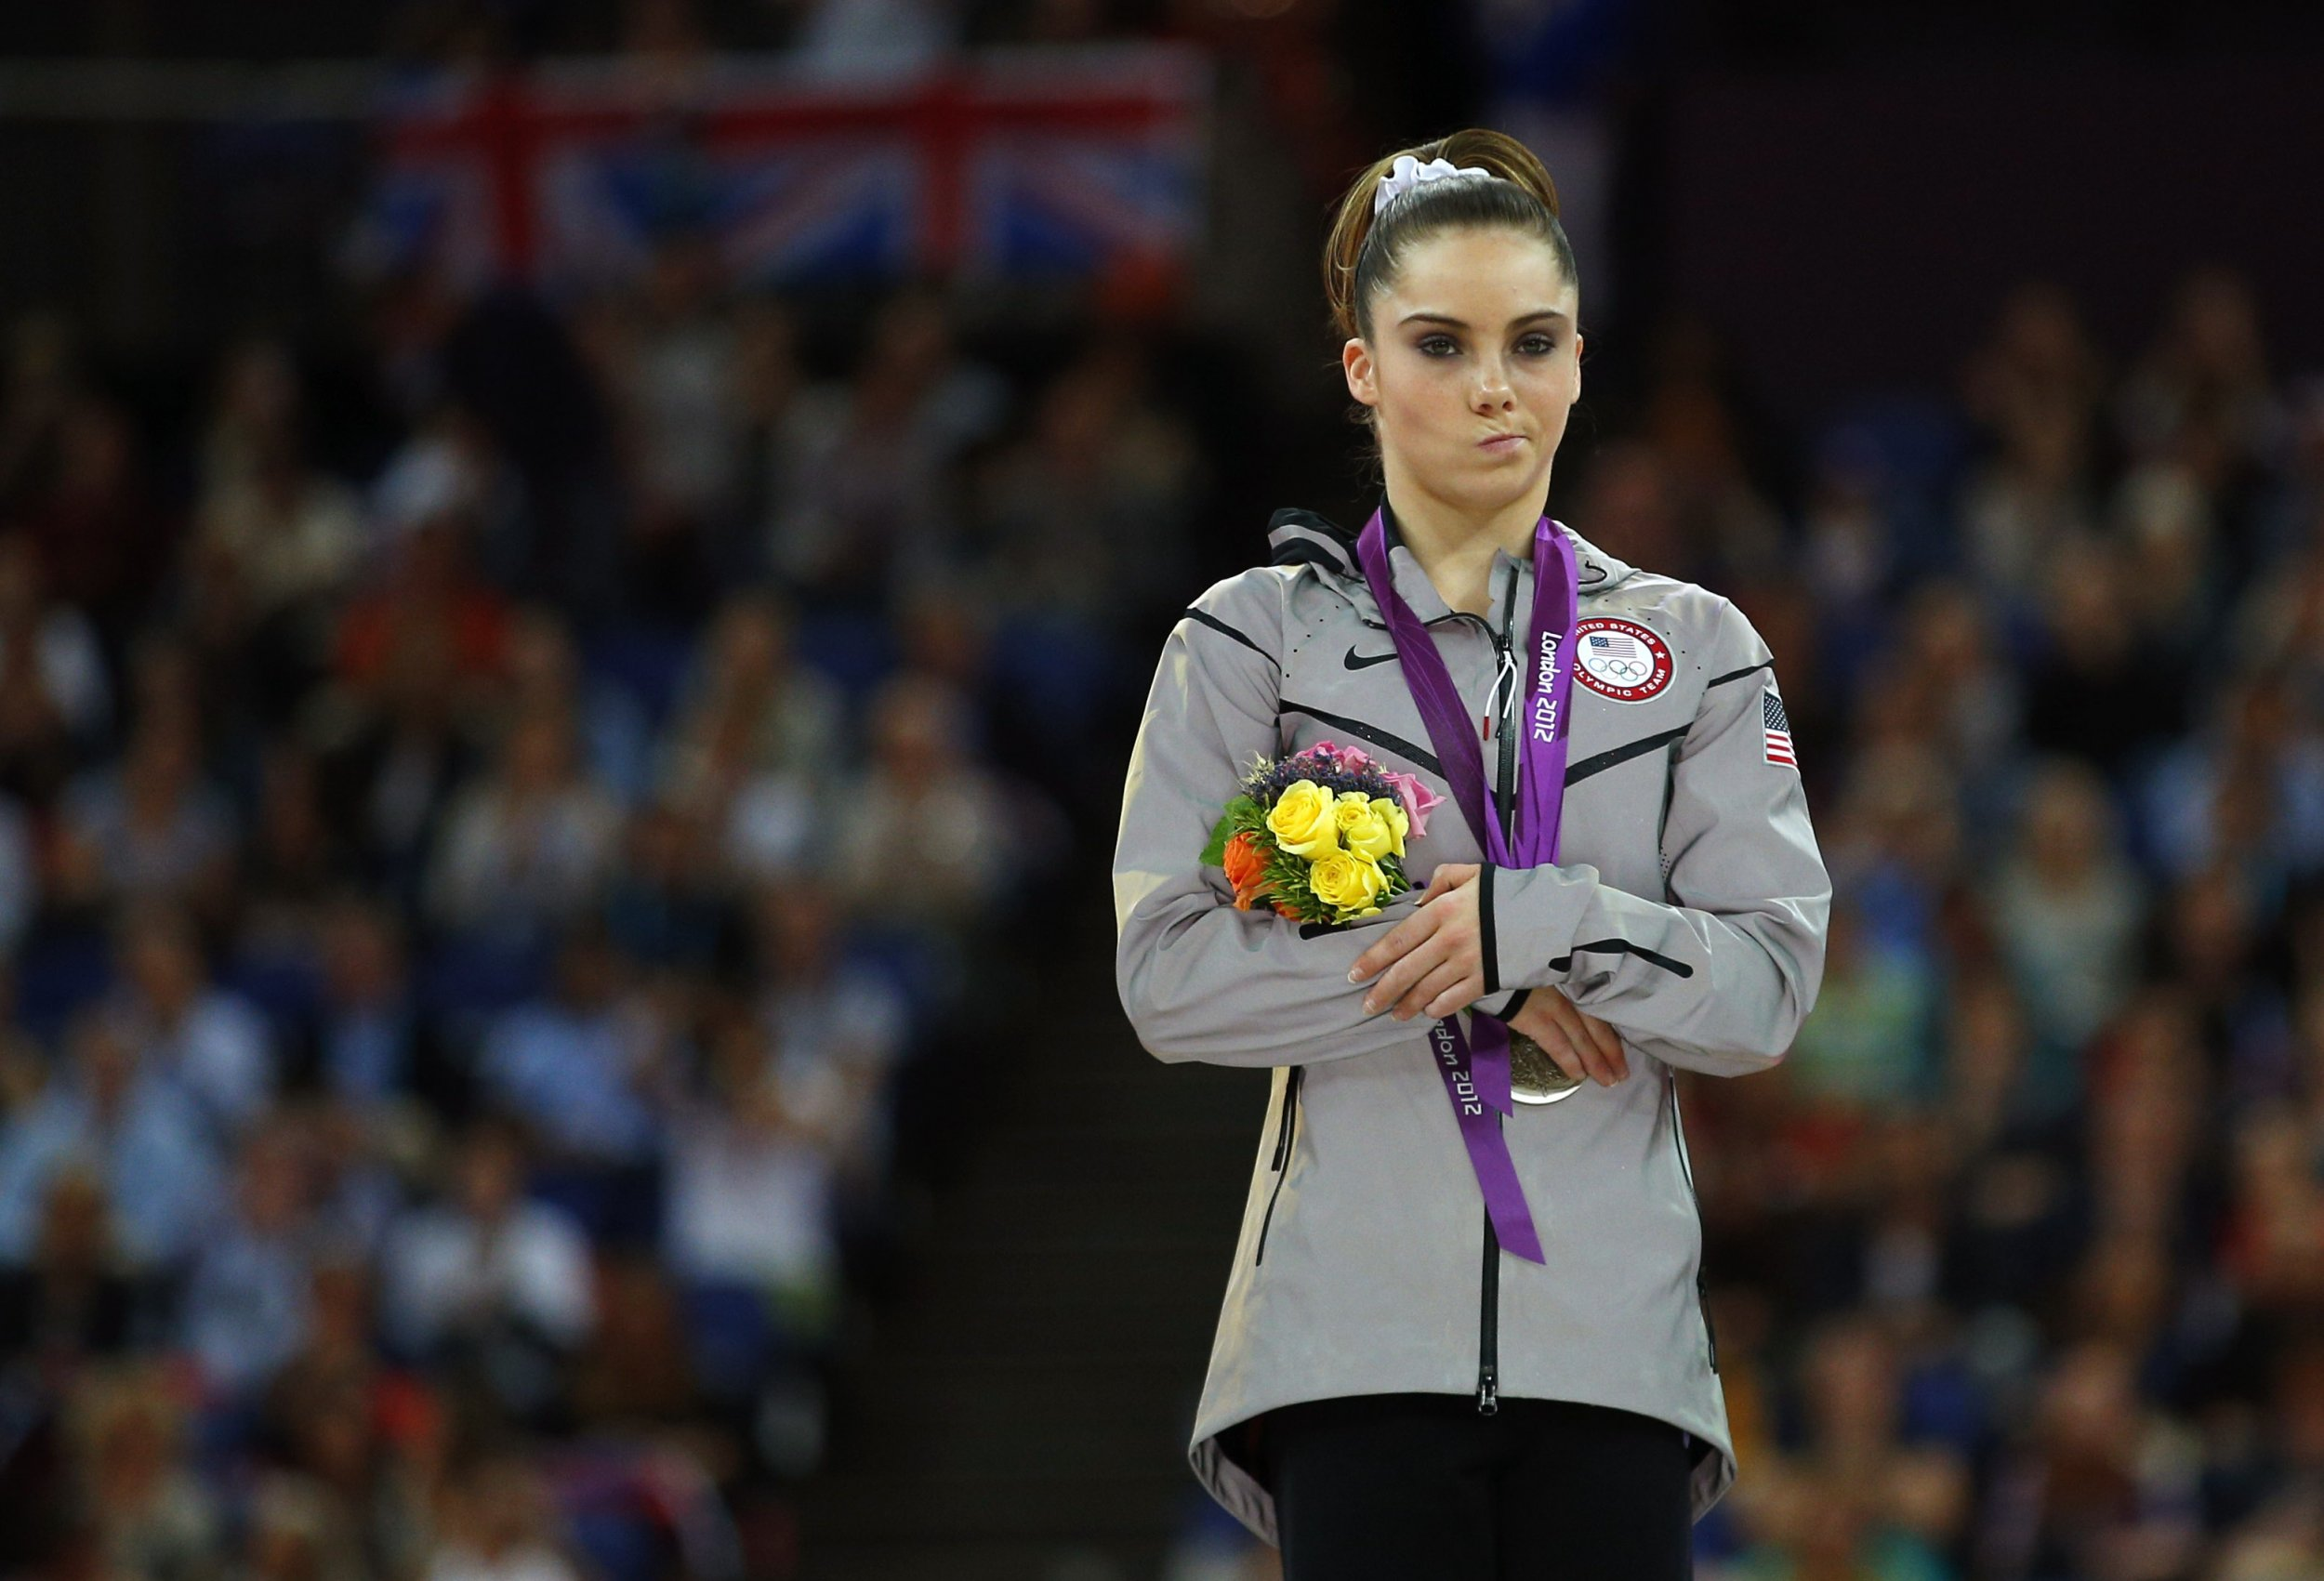 Gymnast Nude pertaining to could gold medal gymnast mckayla maroney face child pornography